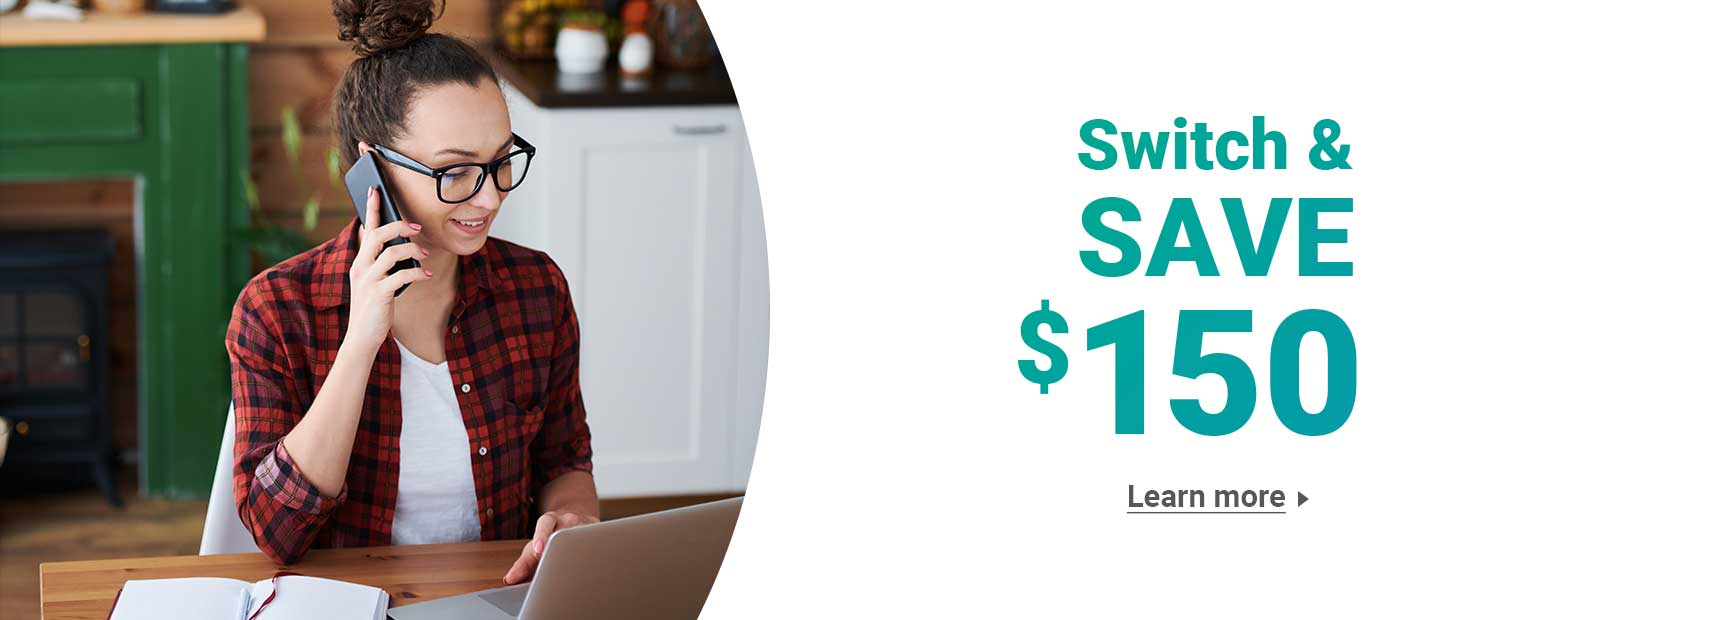 Switch and Save $150